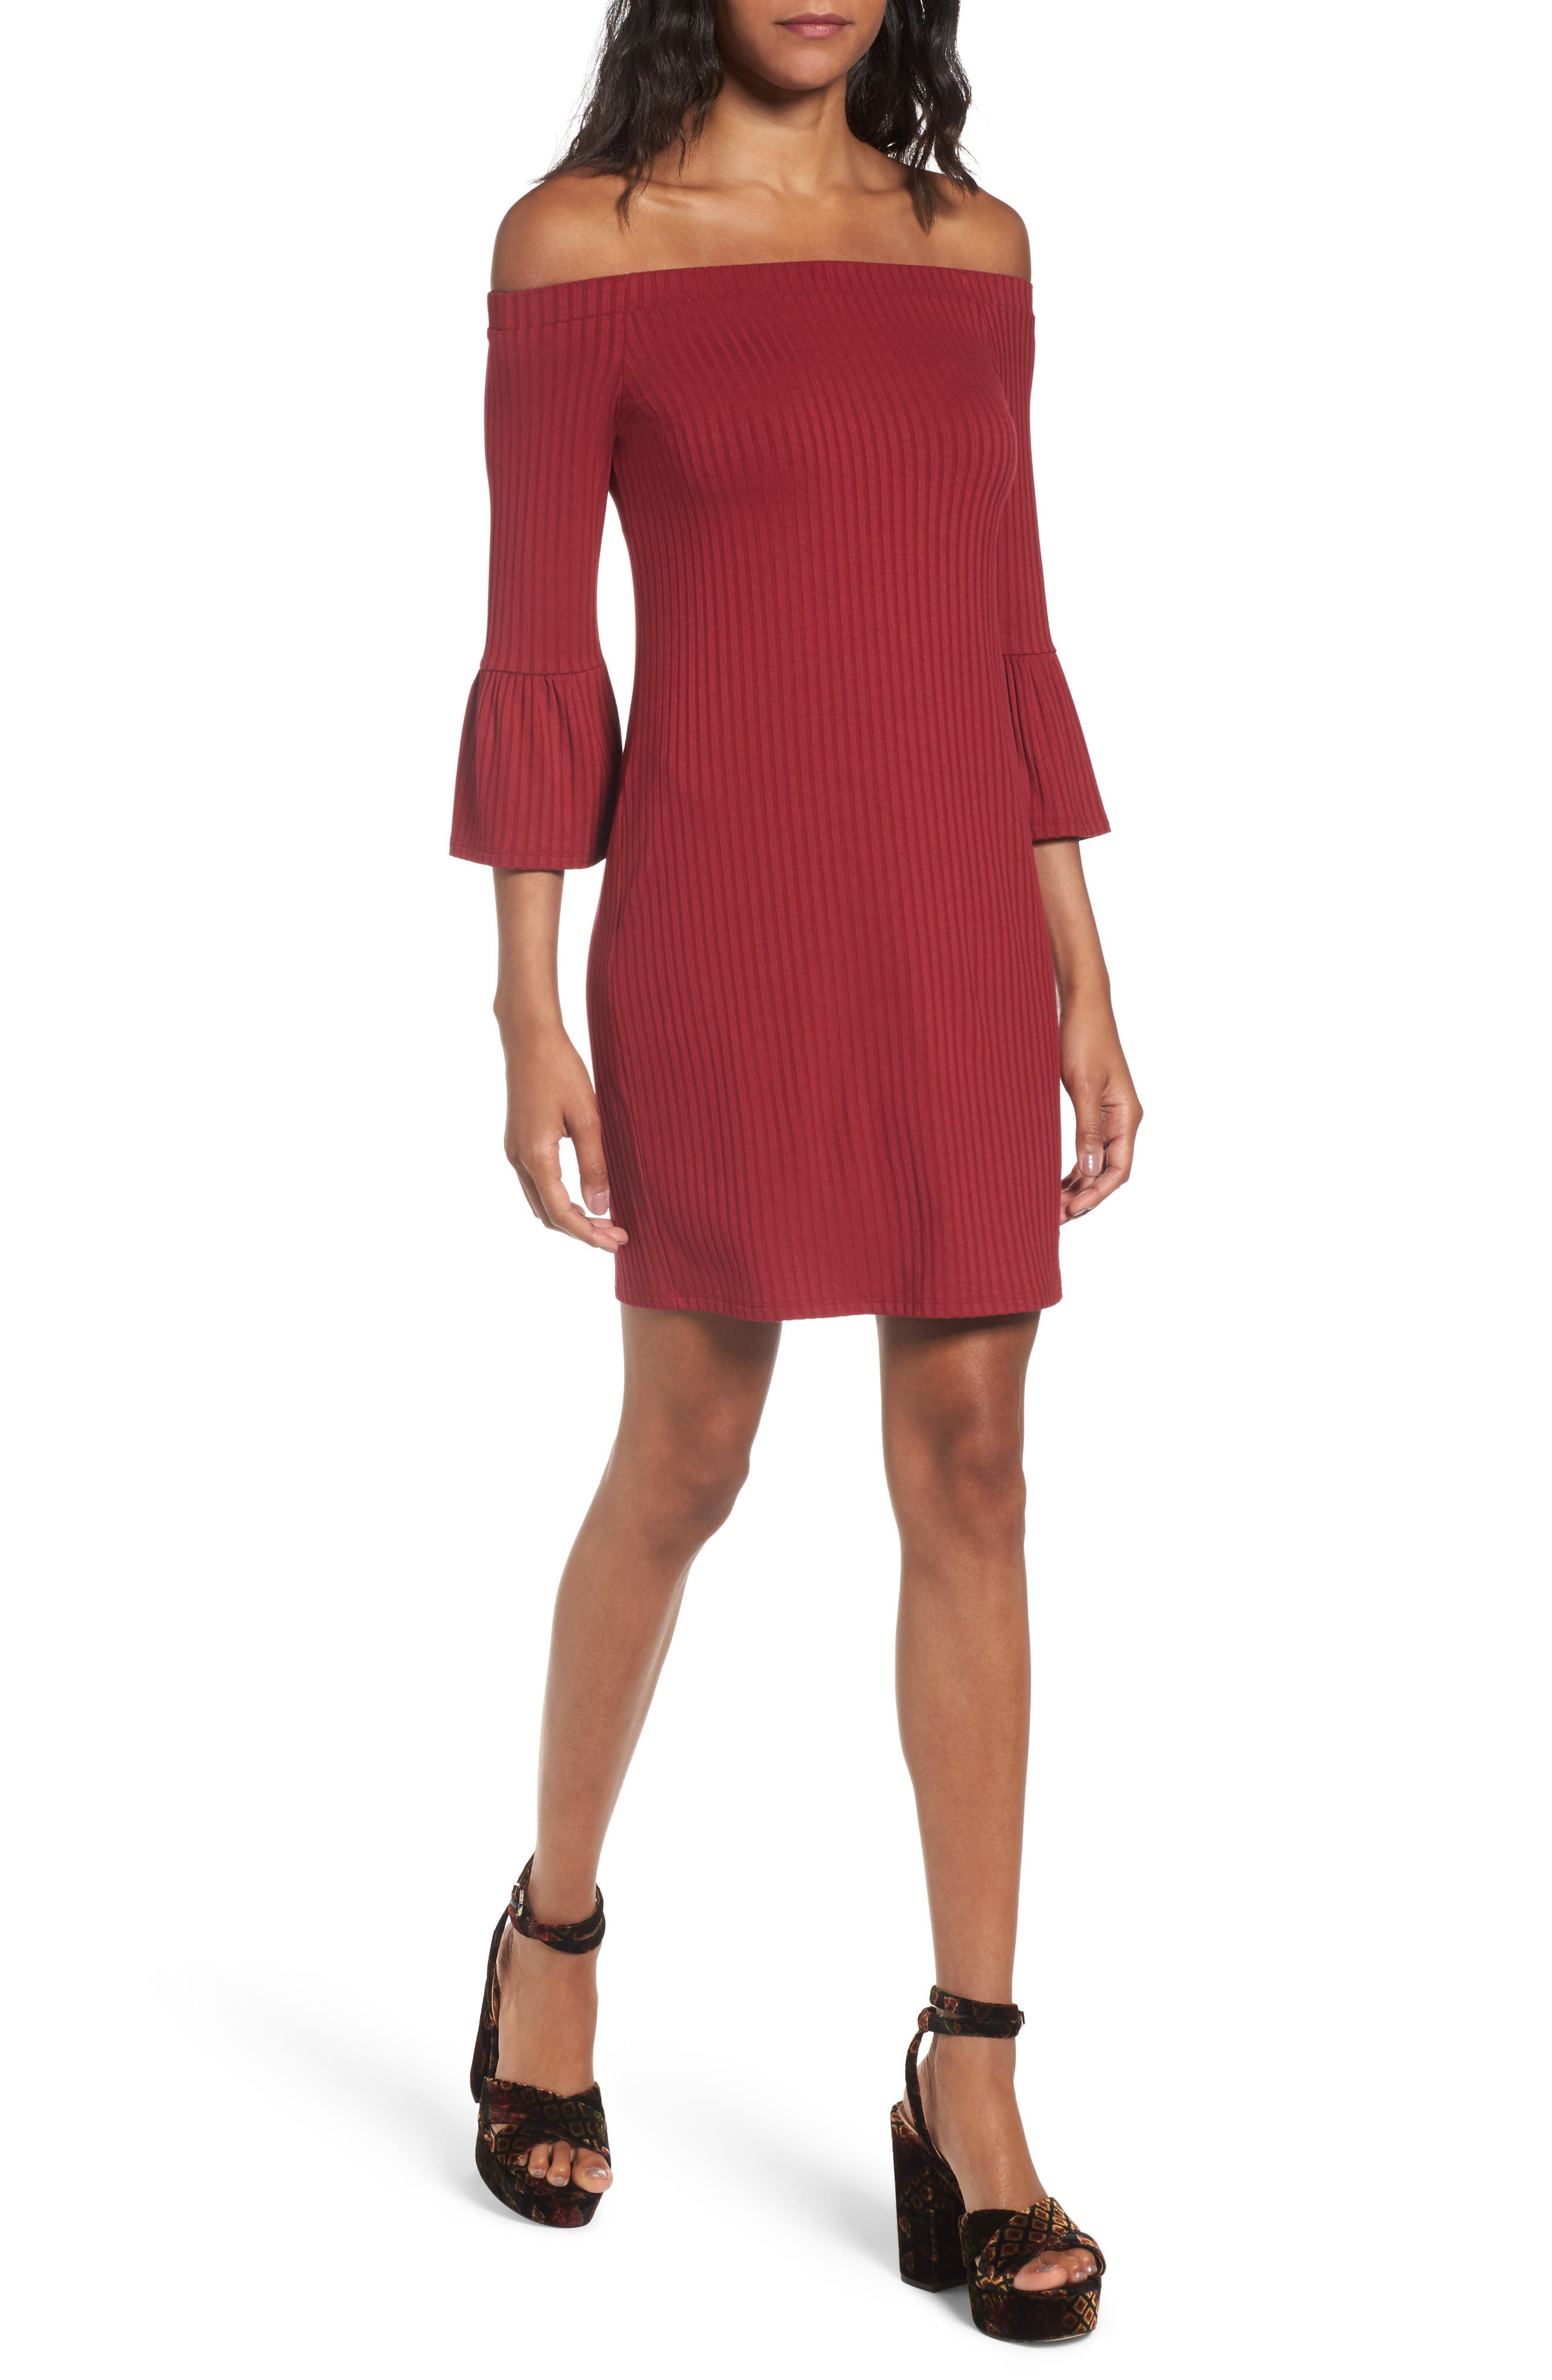 Alternate Image 1 Selected - One Clothing Off the Shoulder Rib Knit Dress